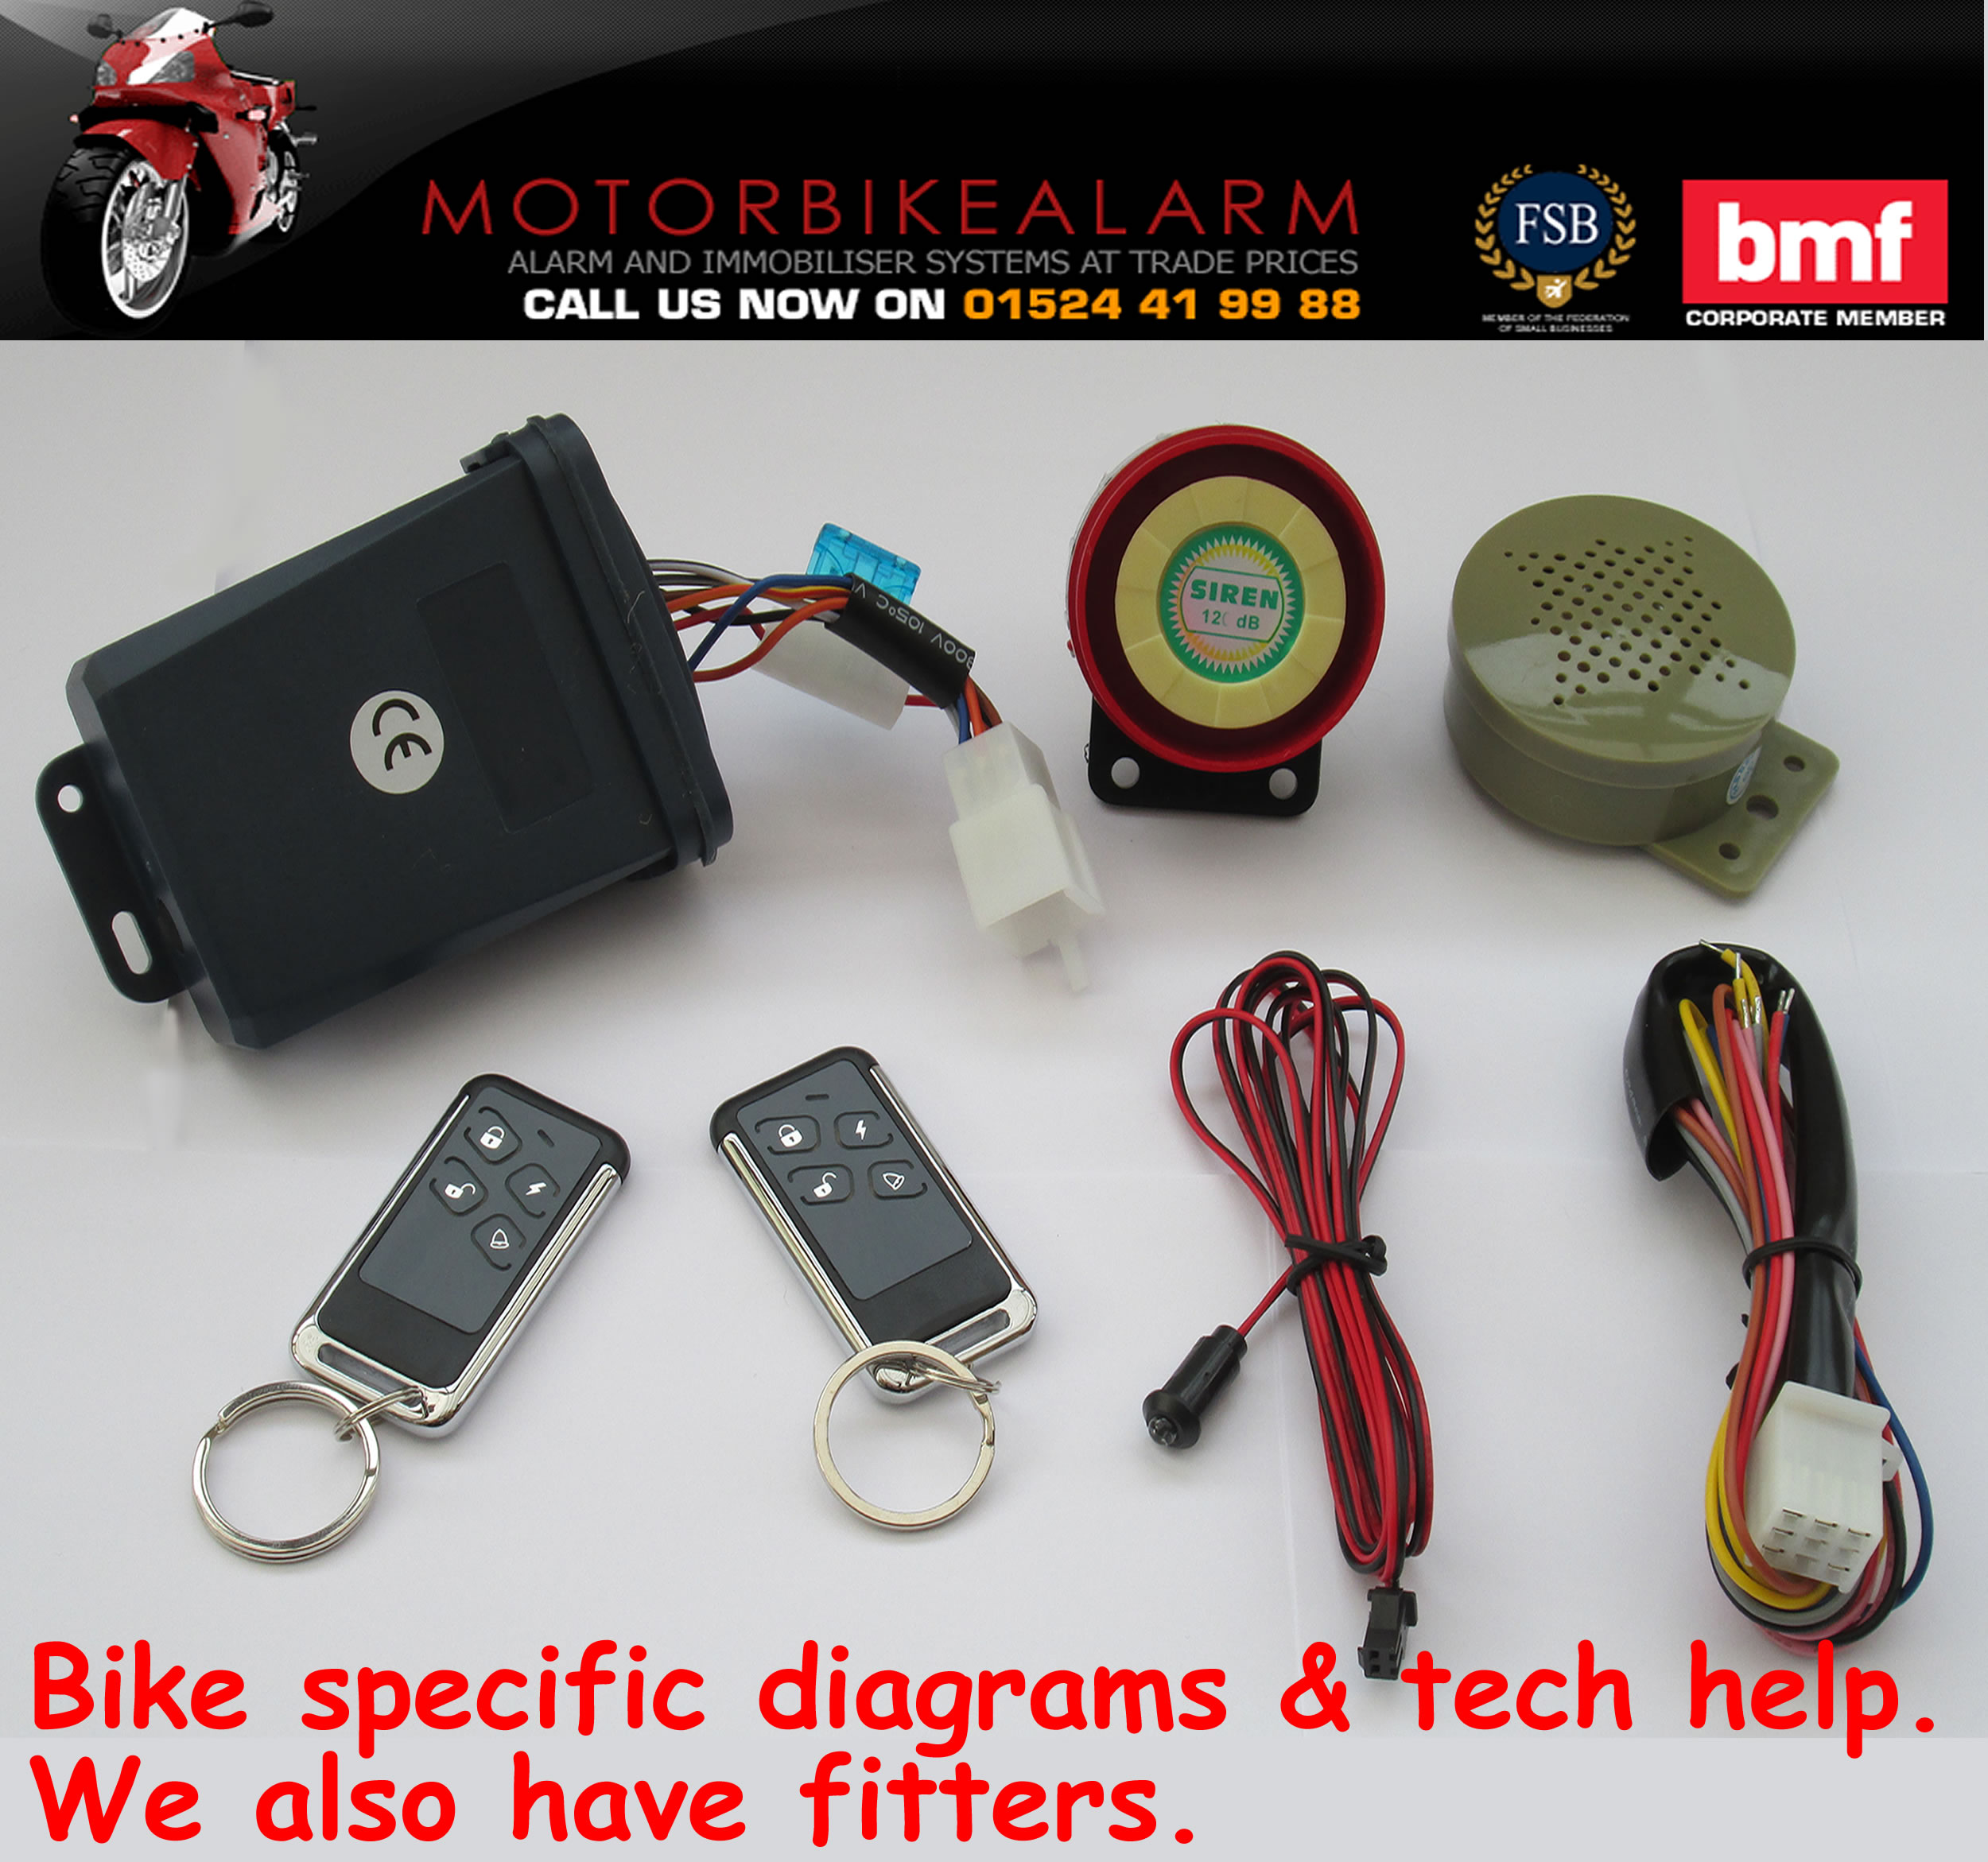 c11talkebay ncs c 11 talking motorbike alarm and immobiliser system cyclone car alarm wiring diagram at arjmand.co